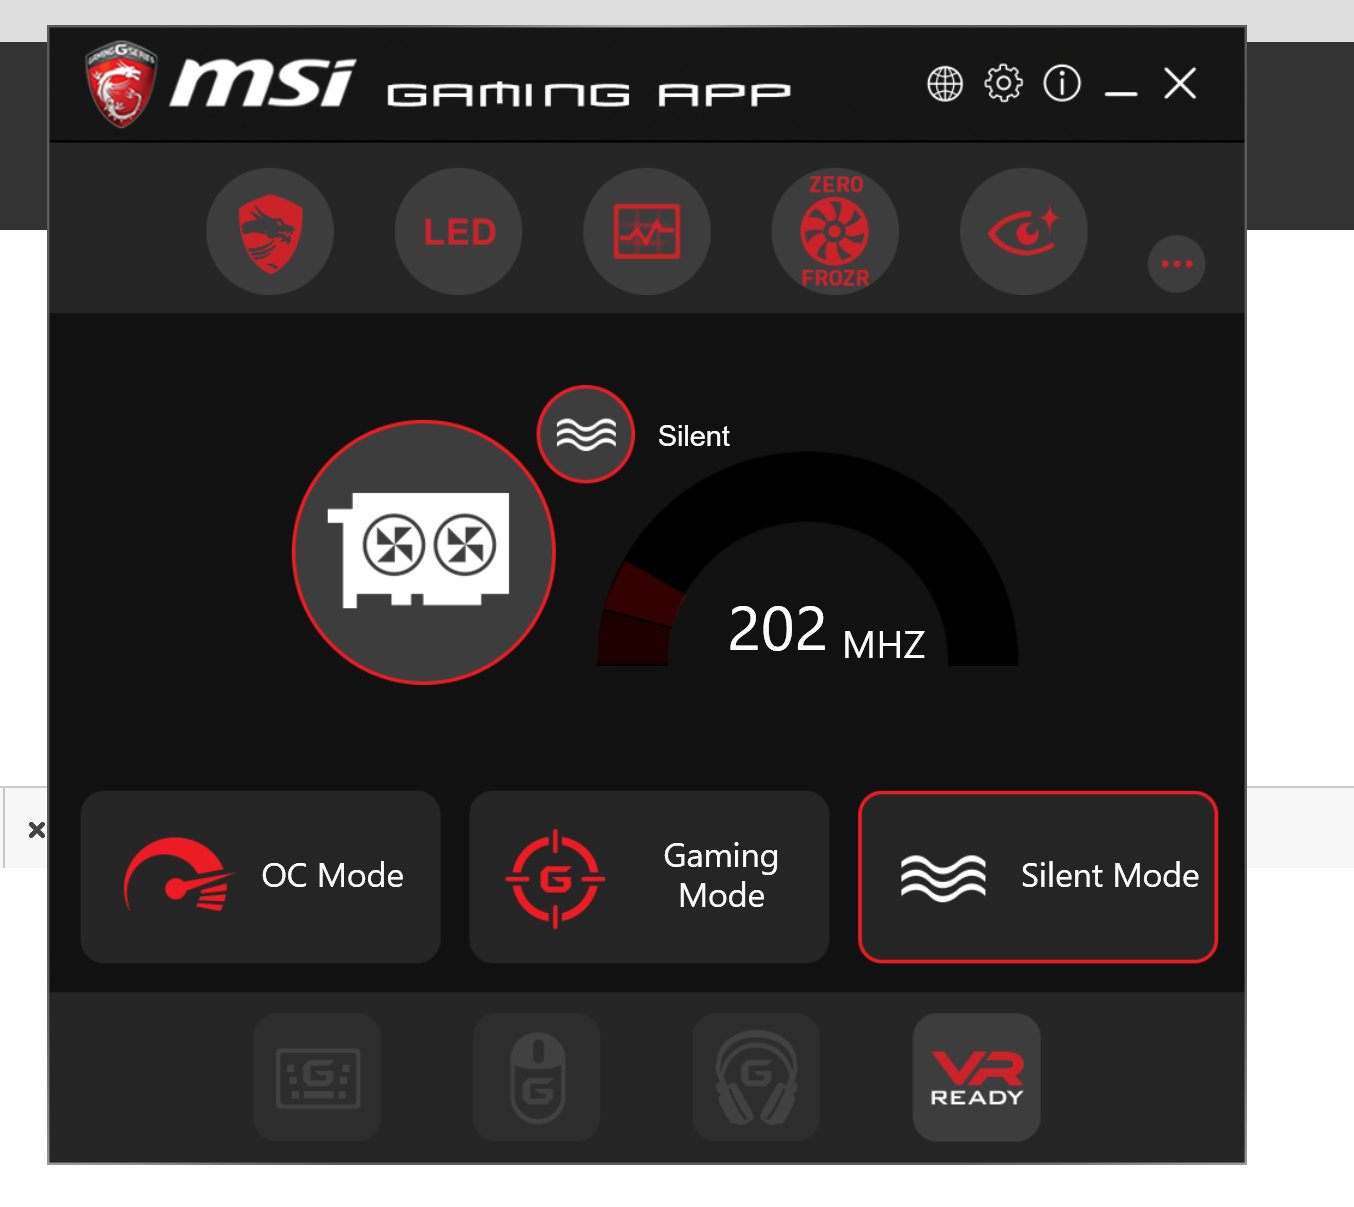 MSI Gaming App not recognizing CPU - Programs, Apps and Websites